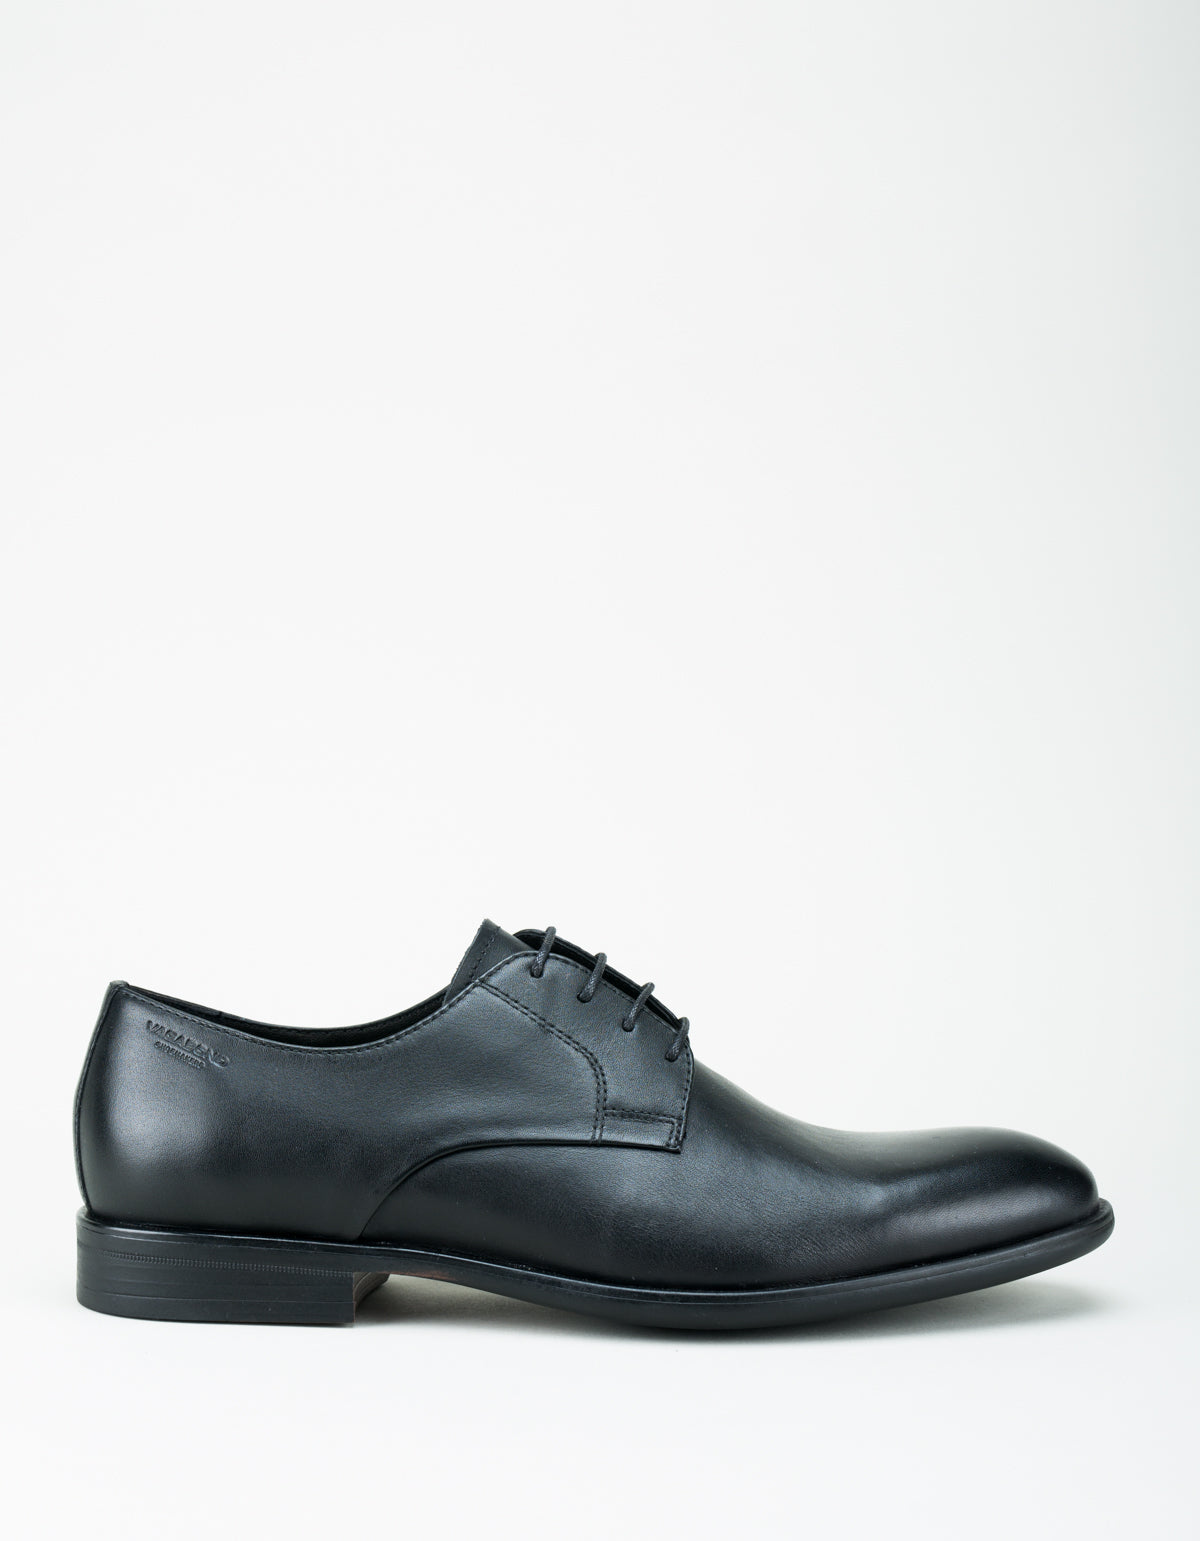 Vagabond Harvey Derby Black